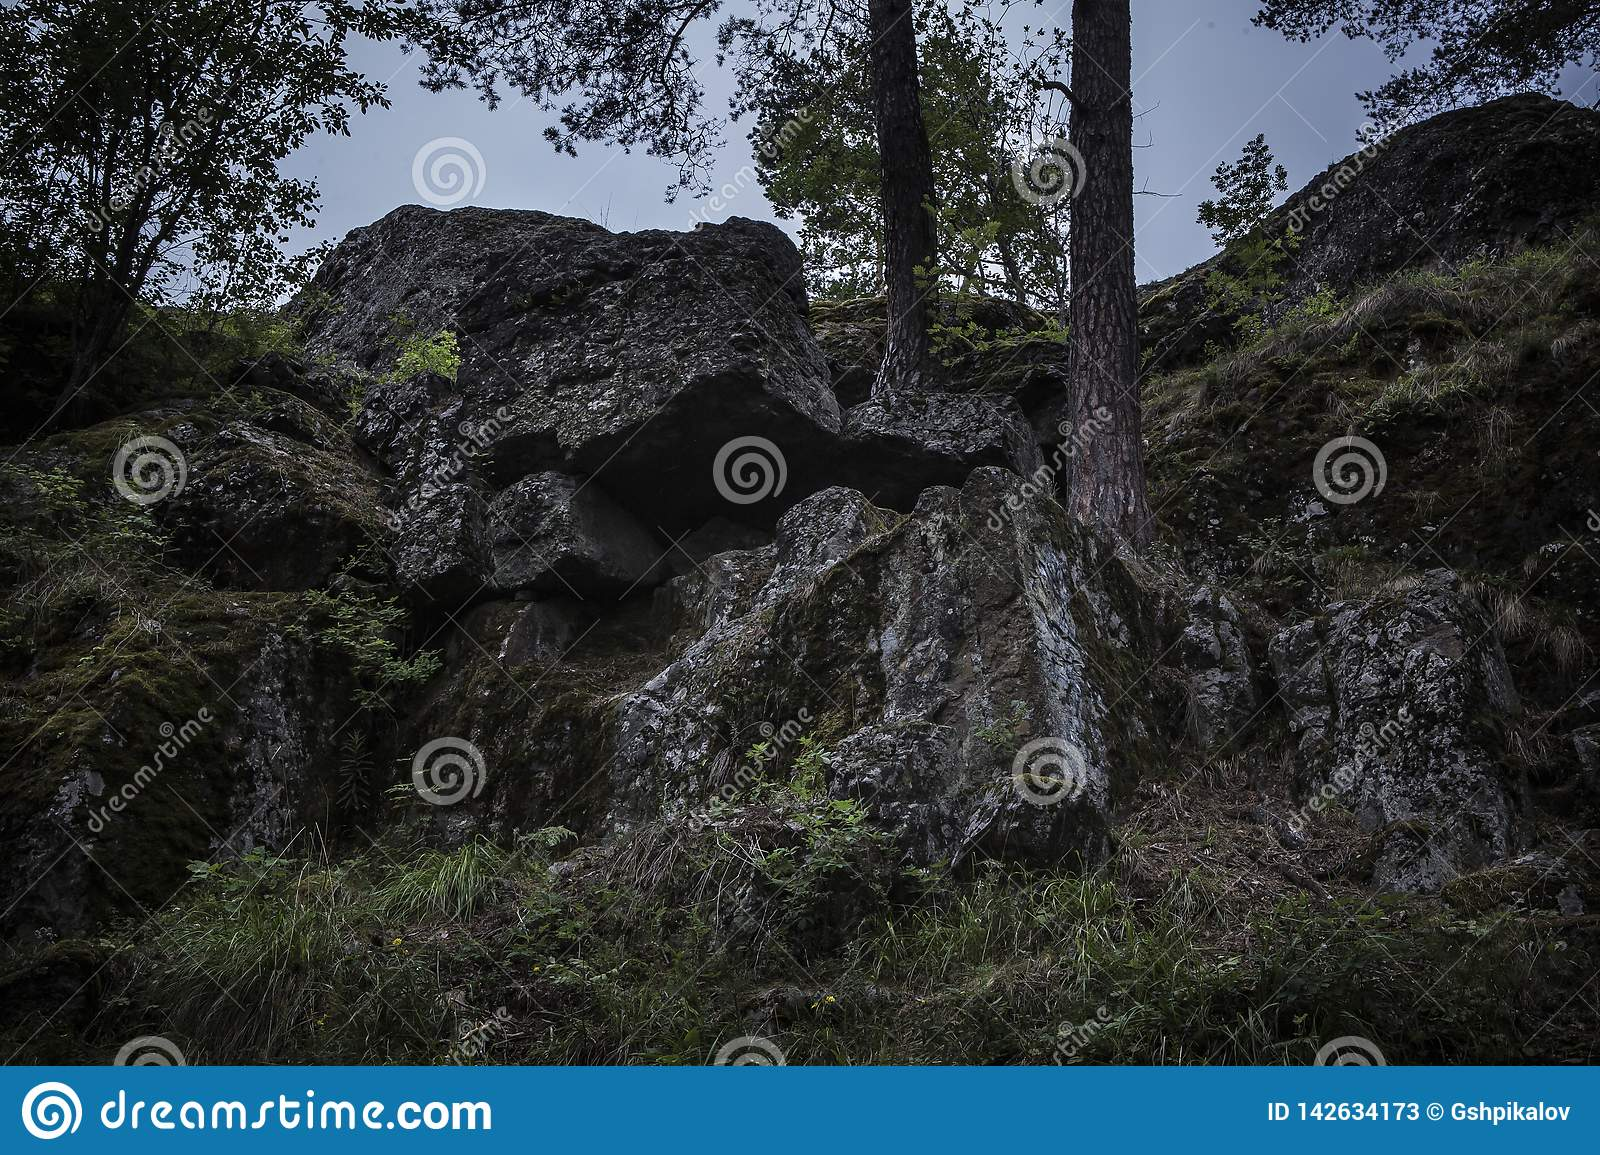 Two trees growing from dark boulders covered in moss